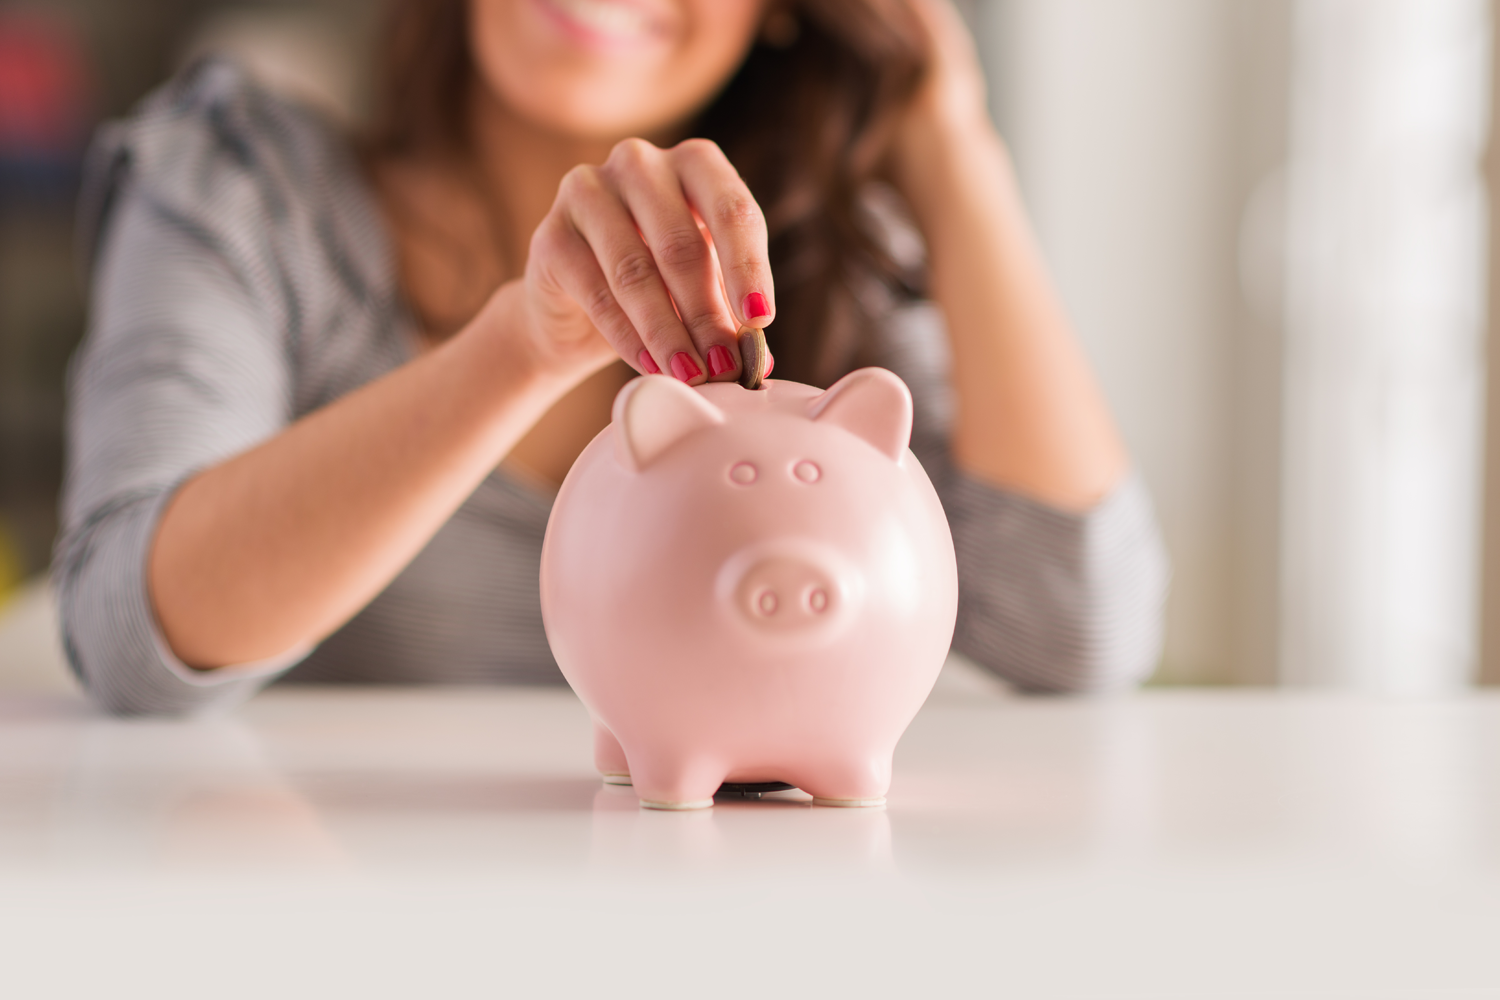 woman saving into a piggy bank